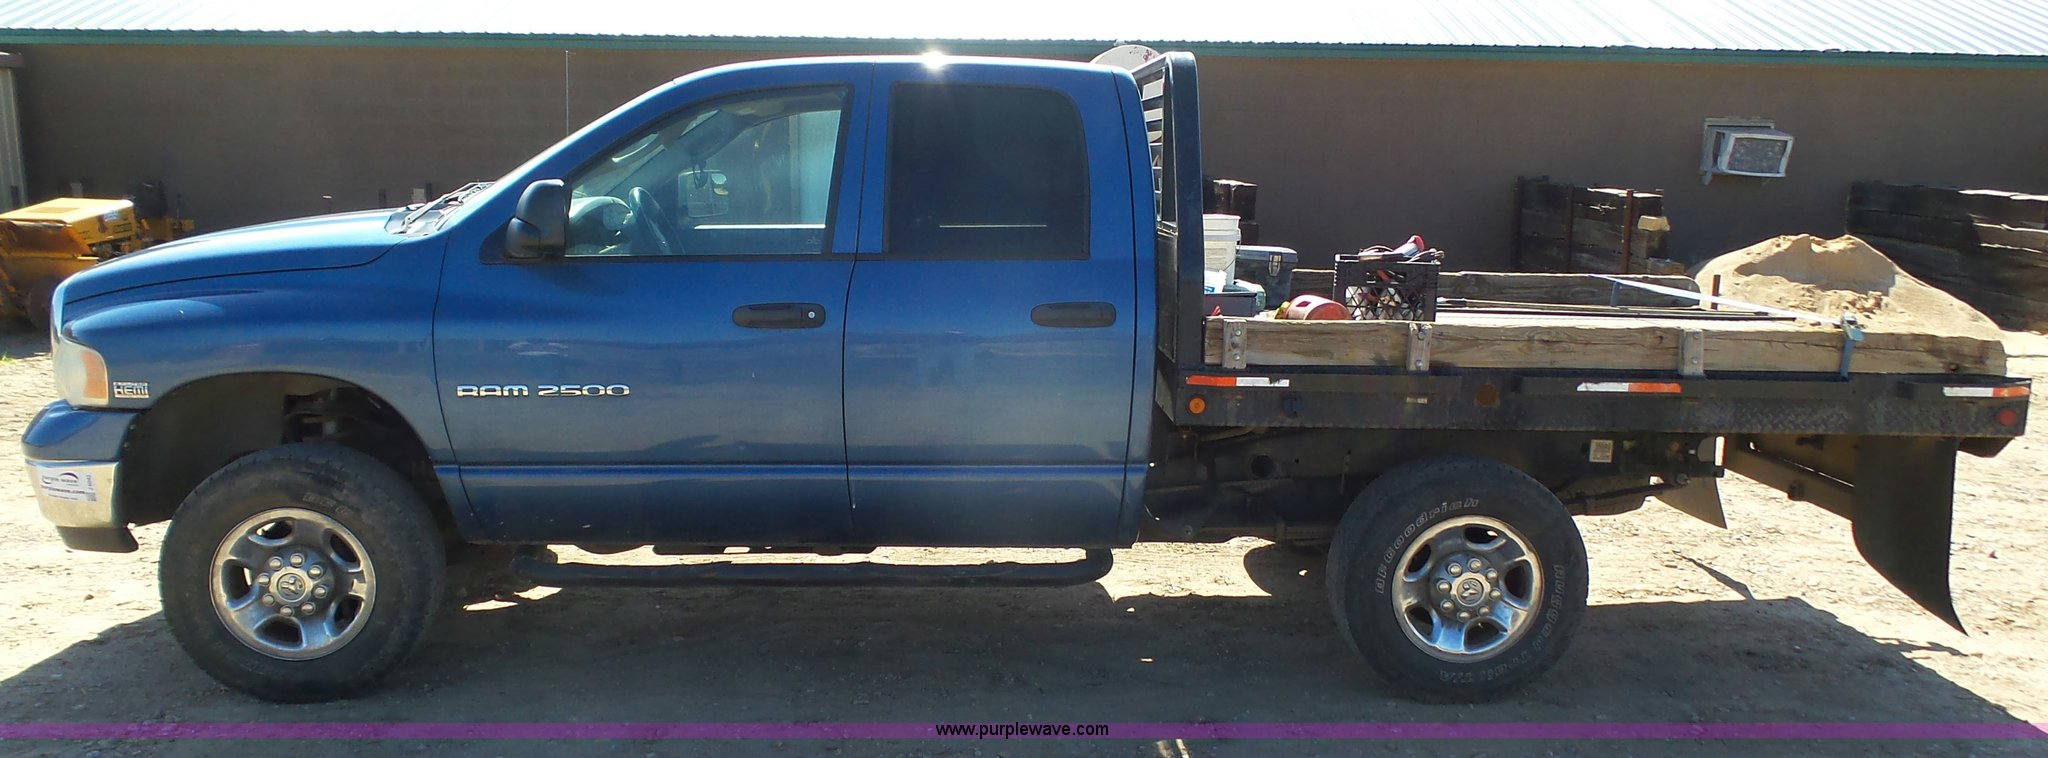 2004 Dodge Ram 2500 Quad Cab Flatbed Pickup Truck In Liberal Ks Item J6042 Sold Purple Wave